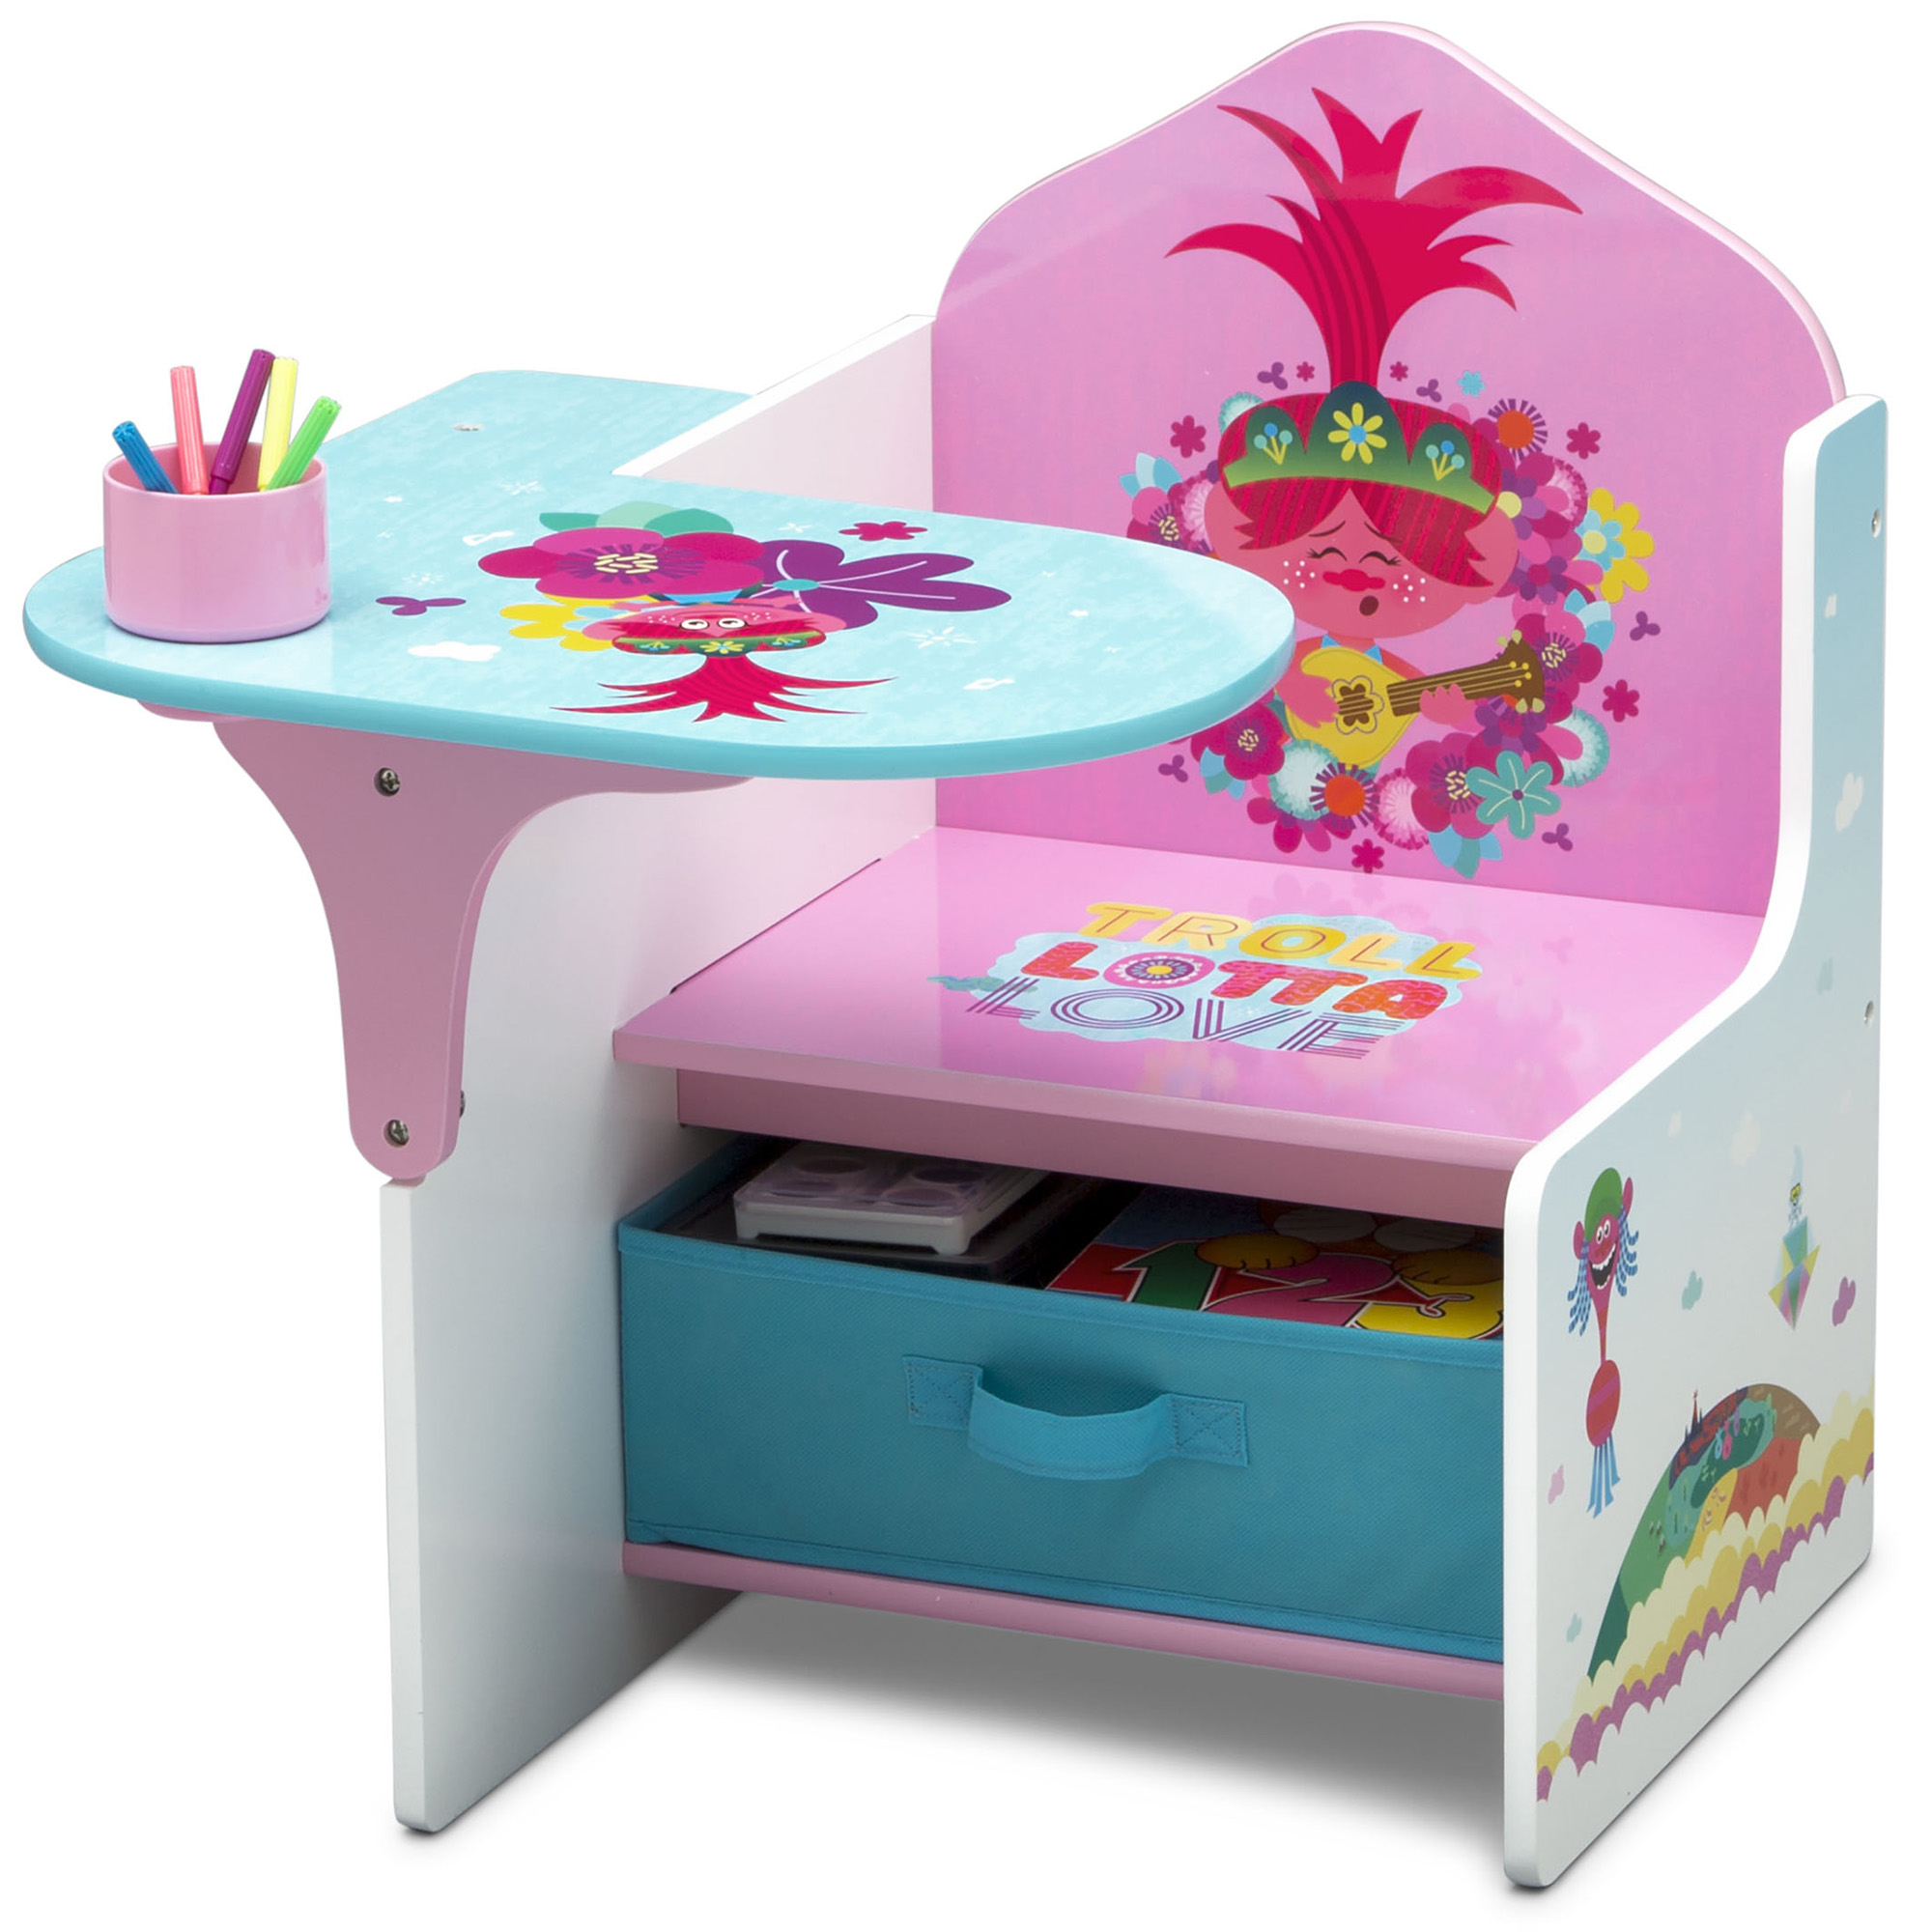 Image of: Kids Desk With Chair Sets Walmart Com